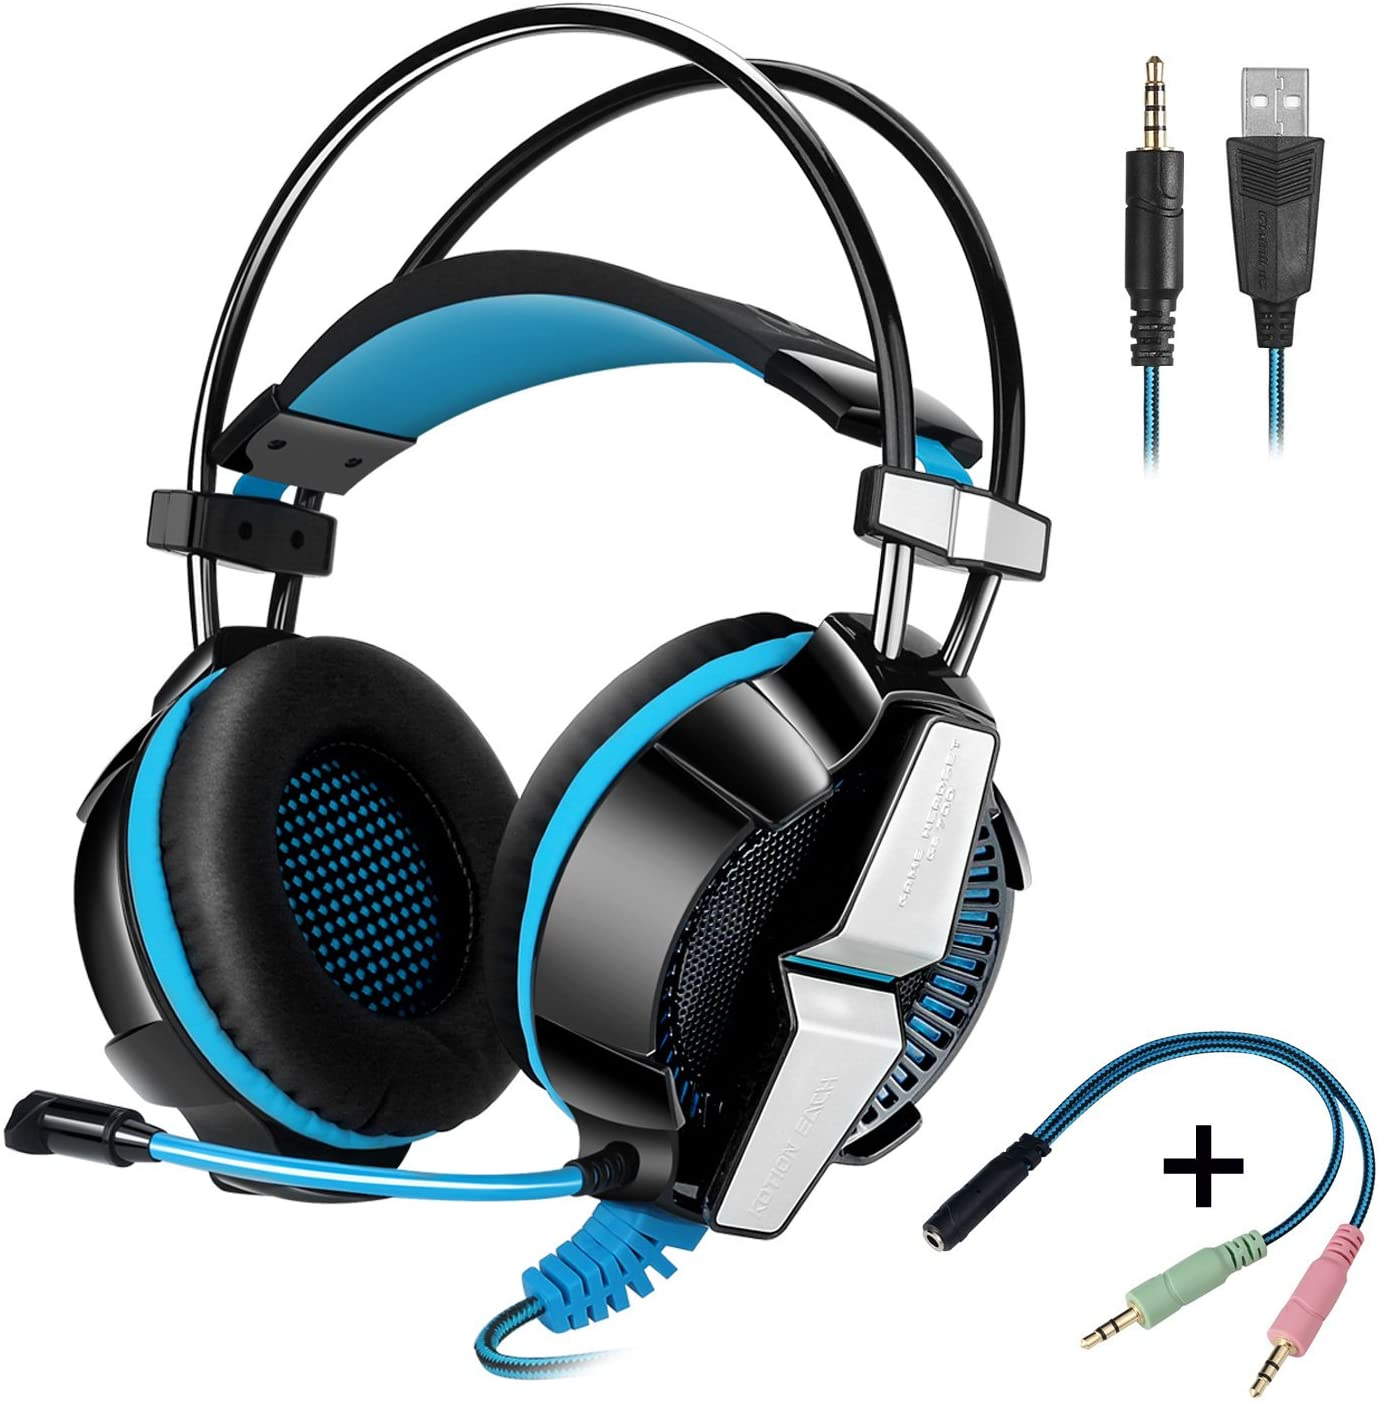 AURICULARES GAMER CON LUZ Y MIC KOTION EACH